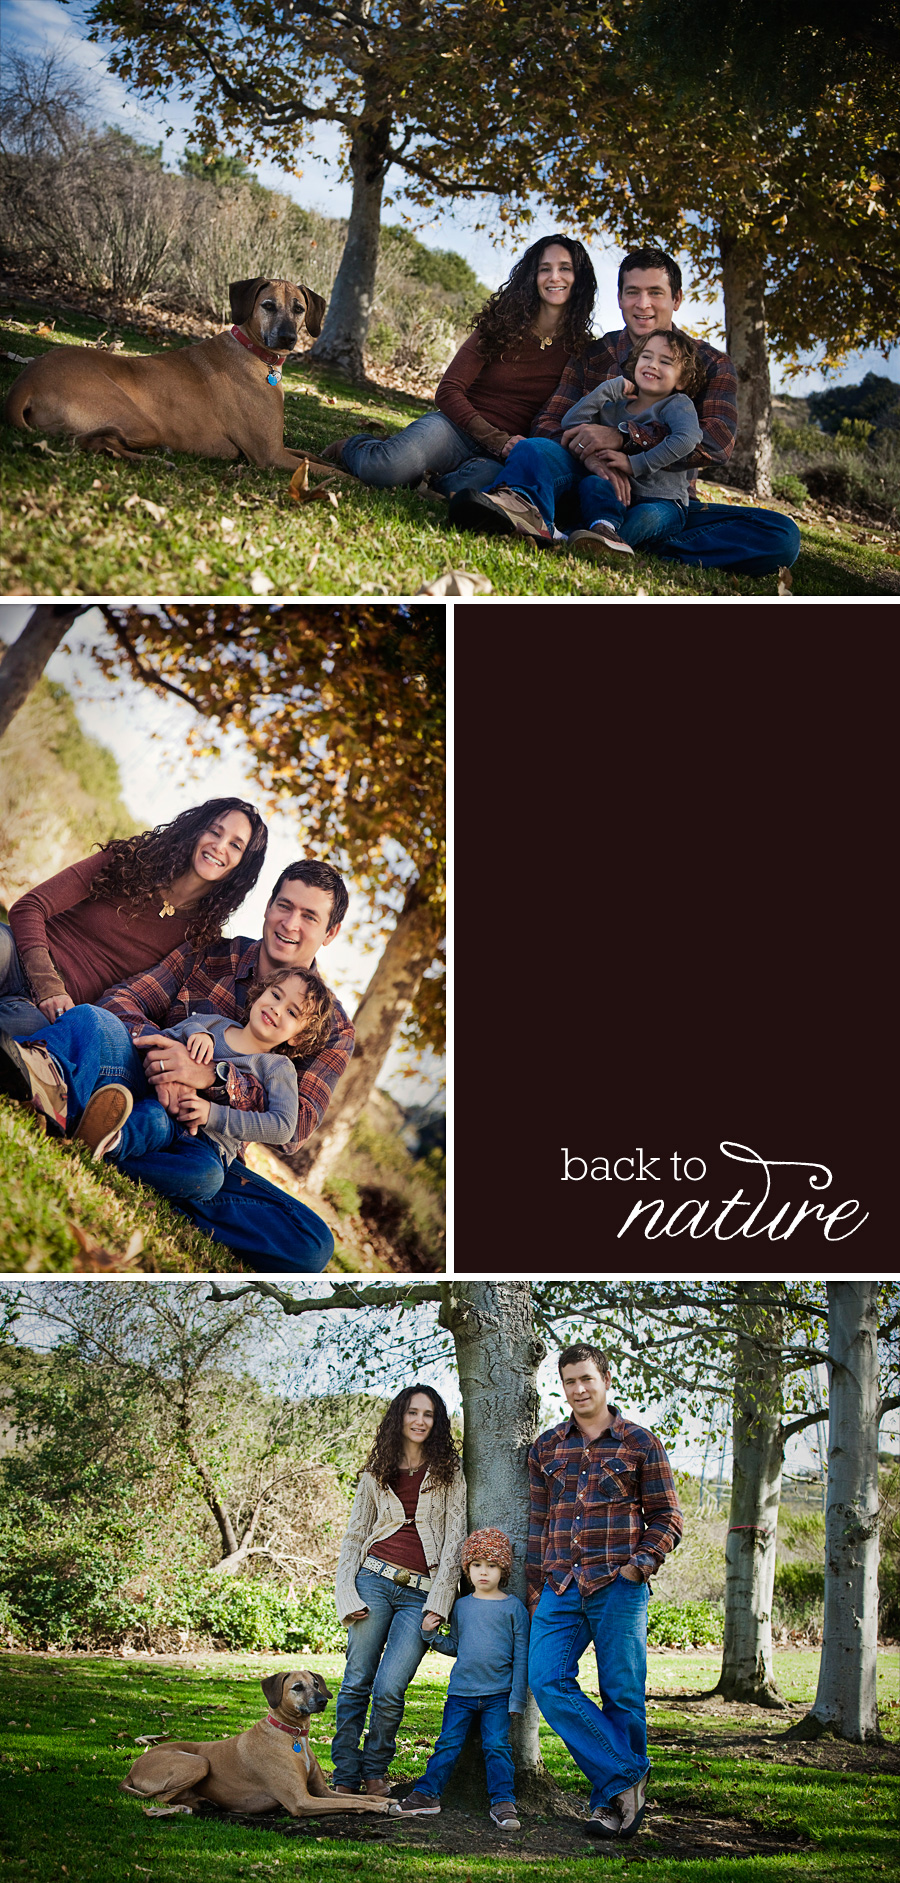 family portraits taken in a beautiful natural environment by Orange County photographer Gillian Crane